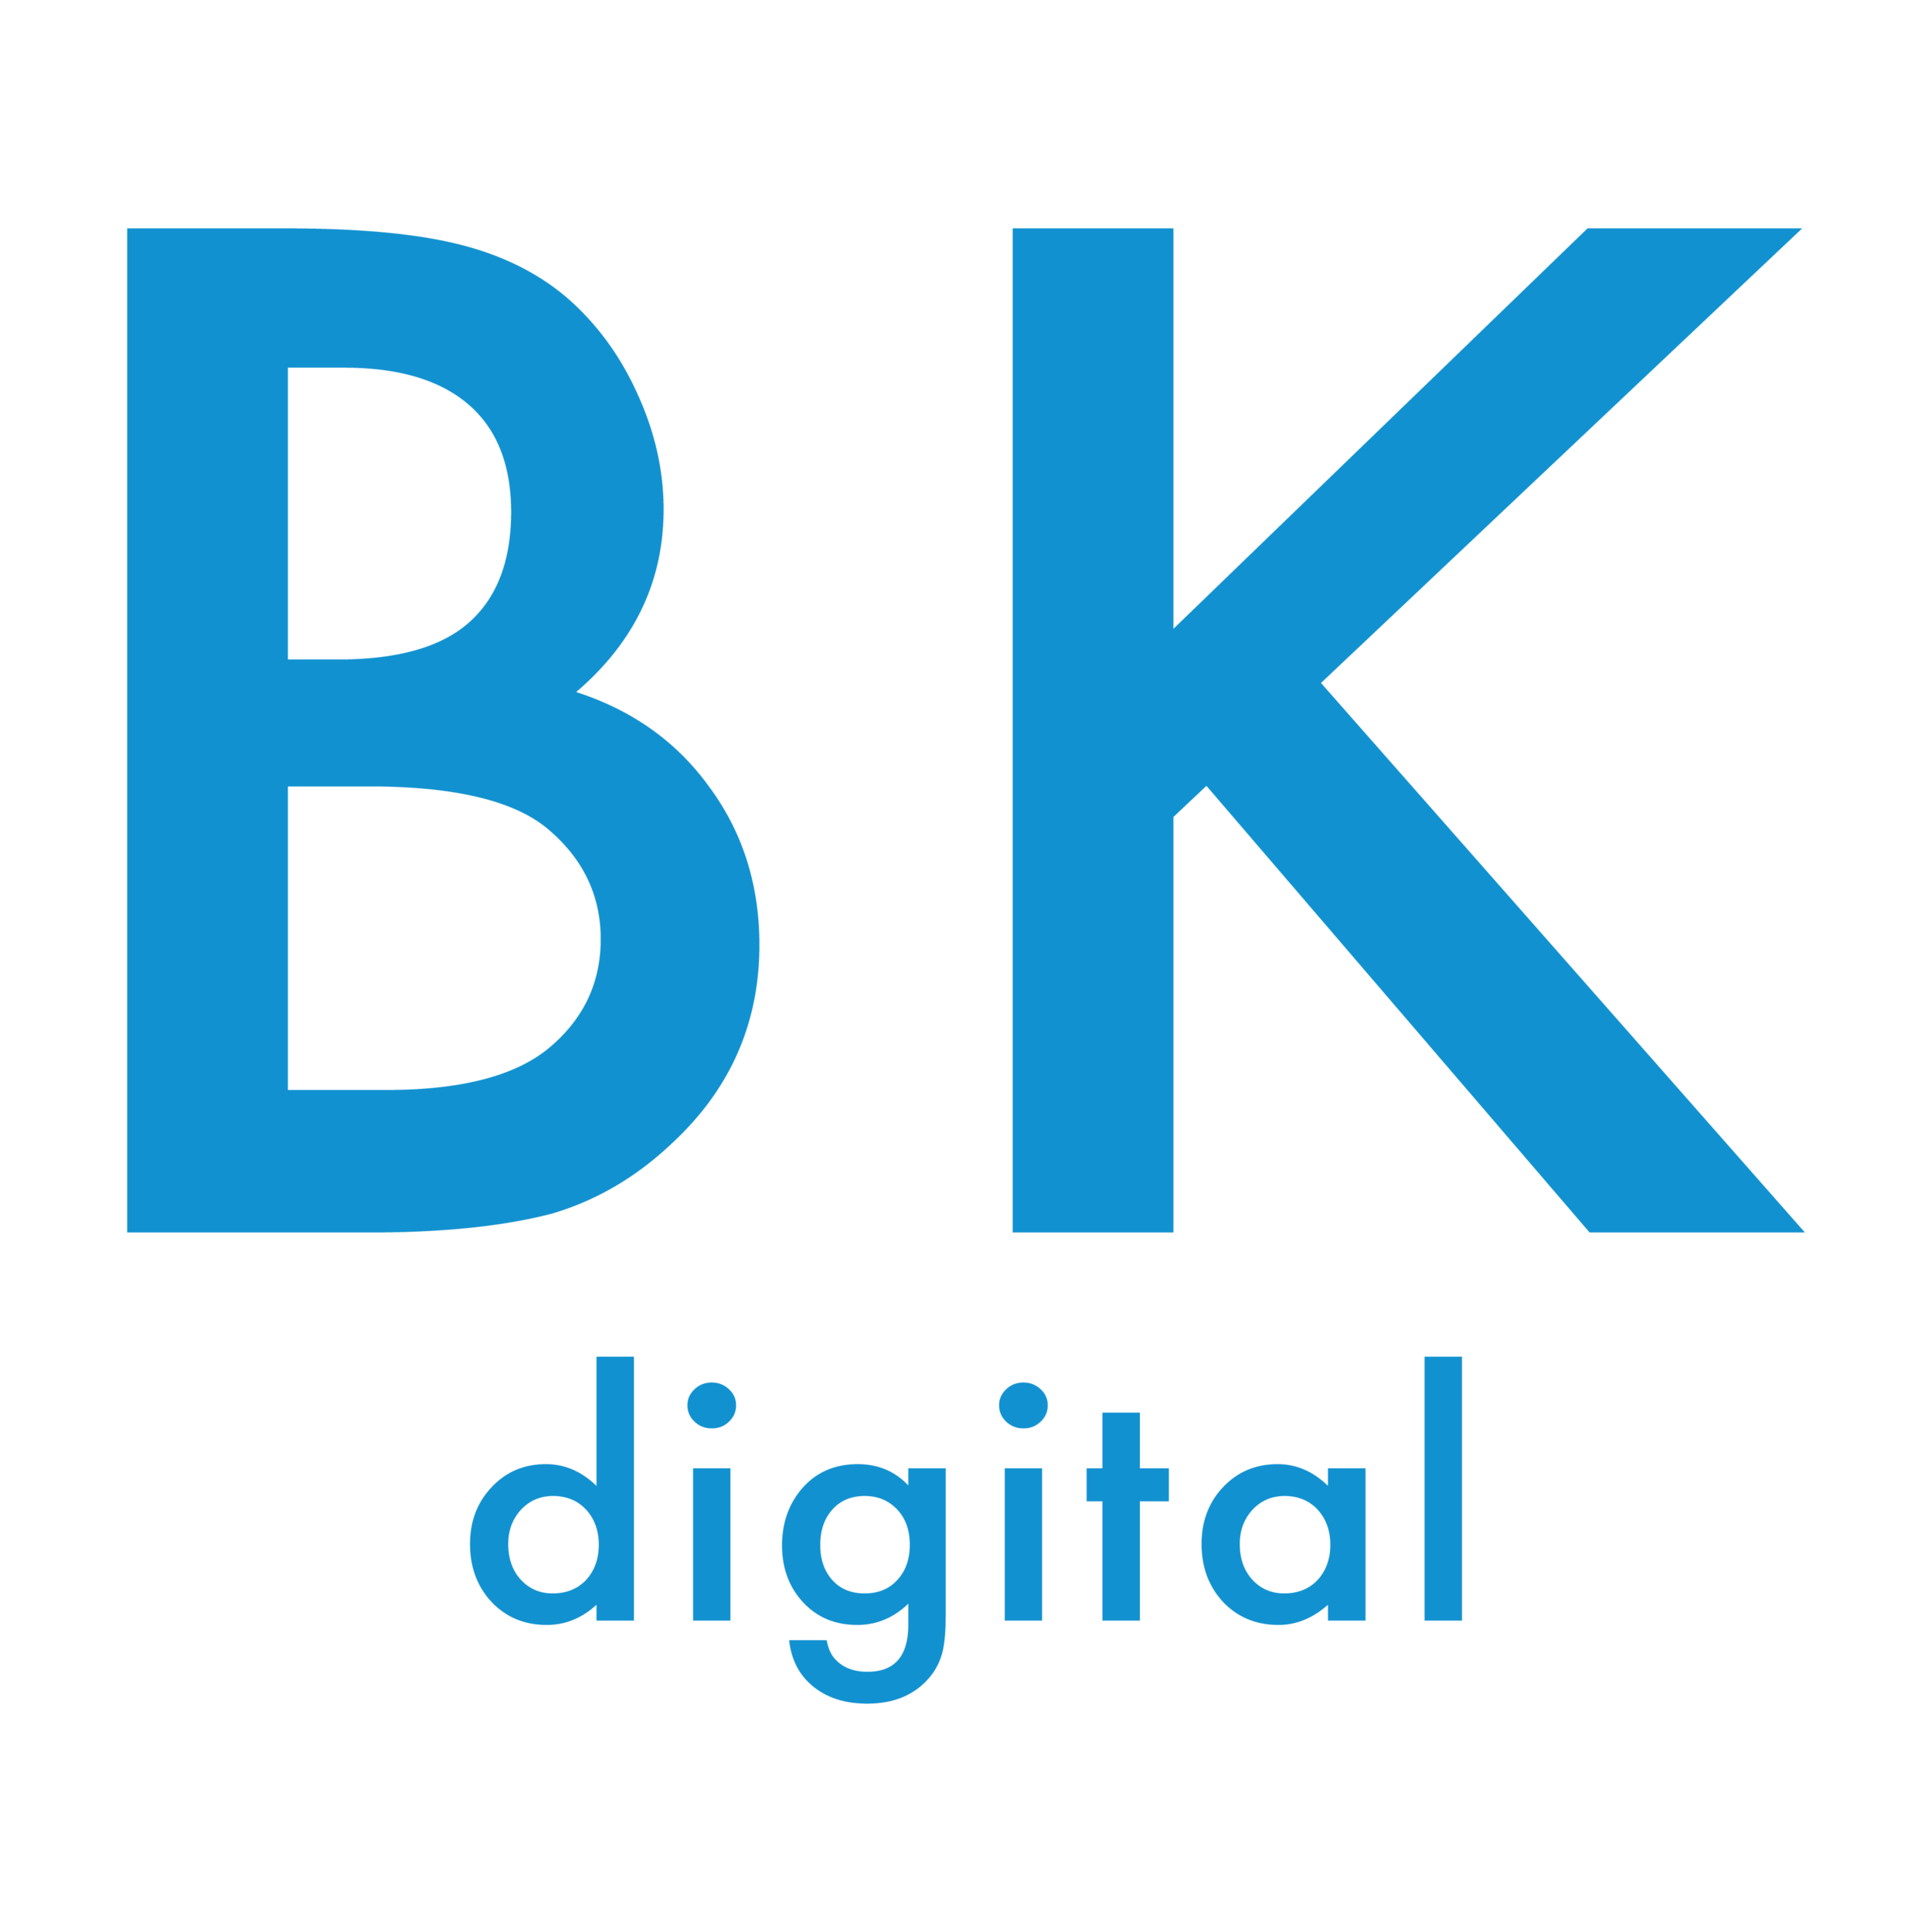 BK Digital_unboxed logo-01.png